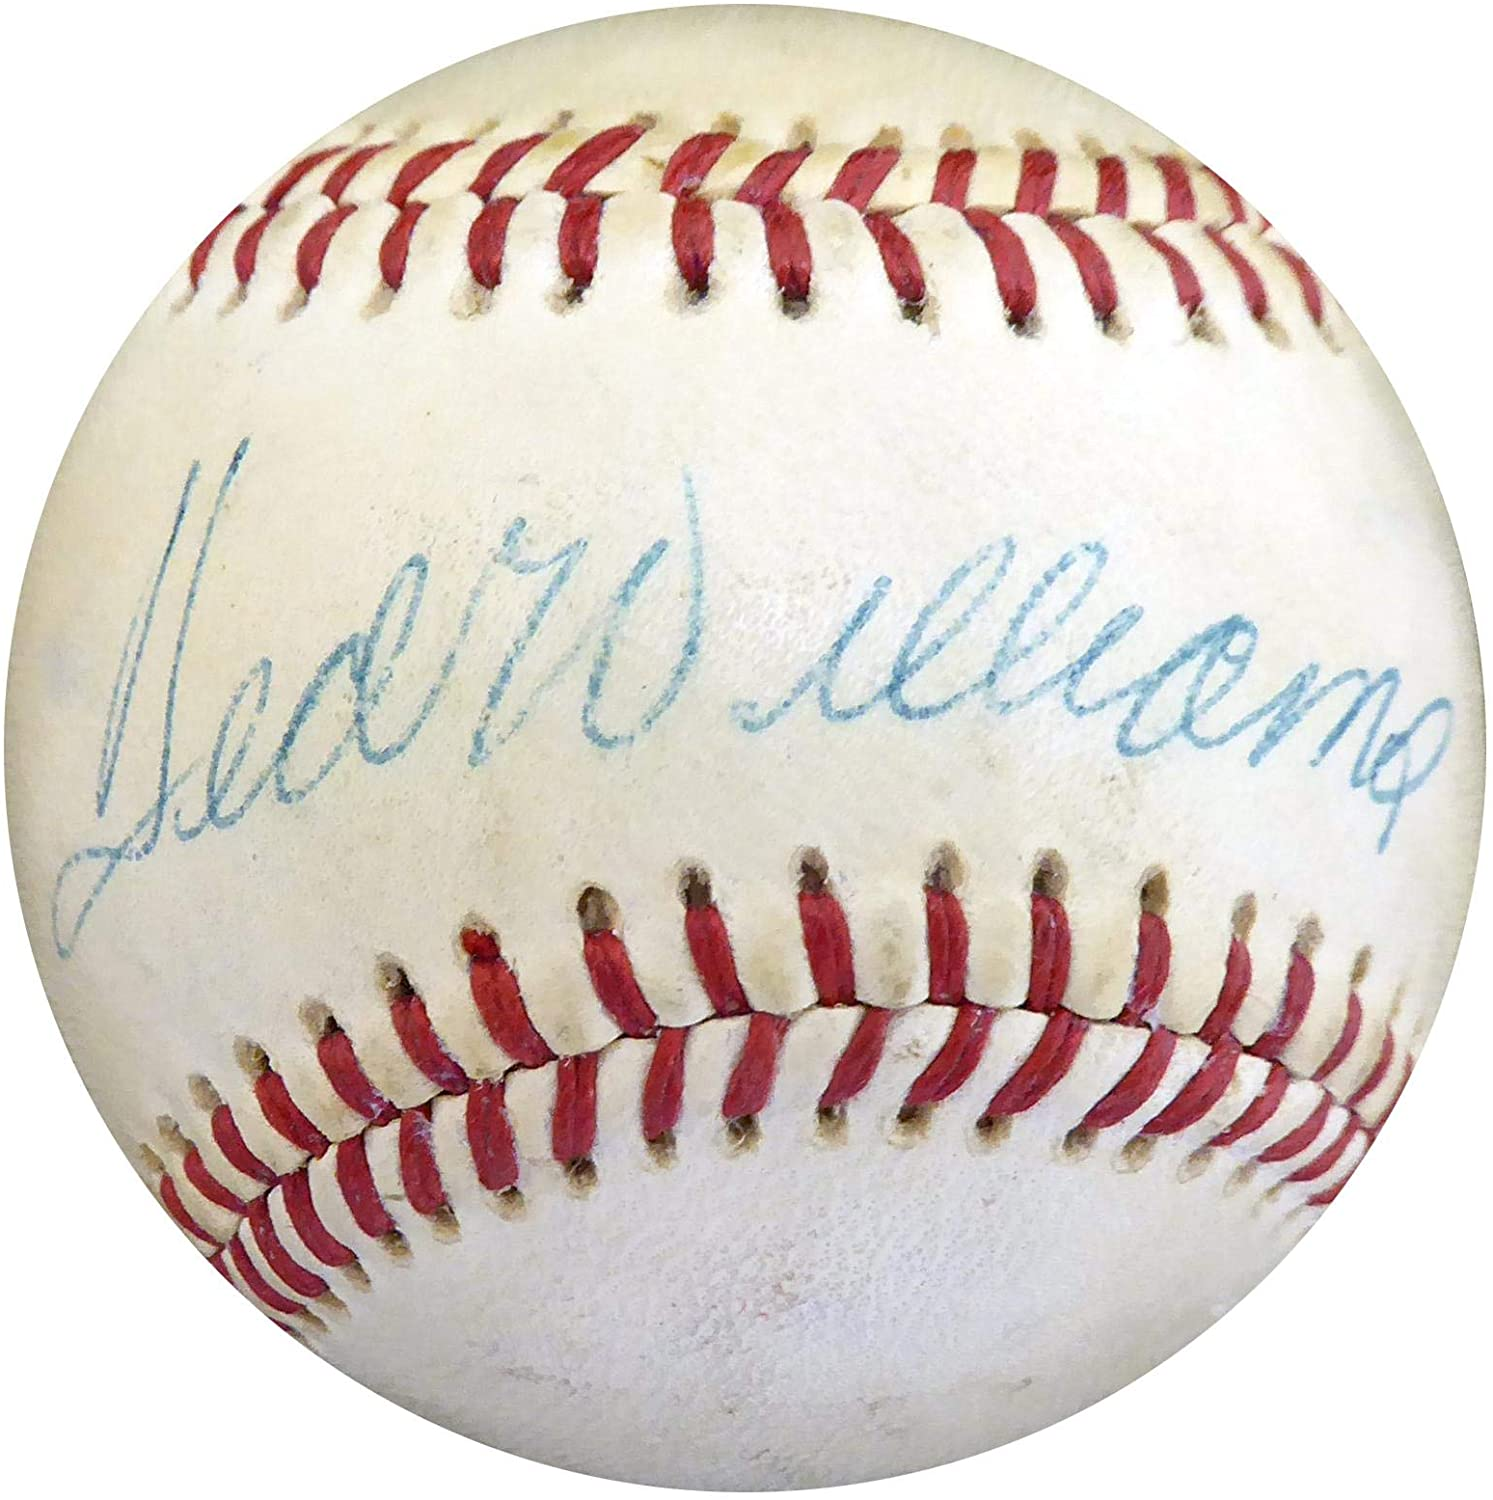 Ted Williams Autographed Baseball Boston Red Sox Beckett BAS #A28352 - Beckett Authentication - Autographed Baseballs